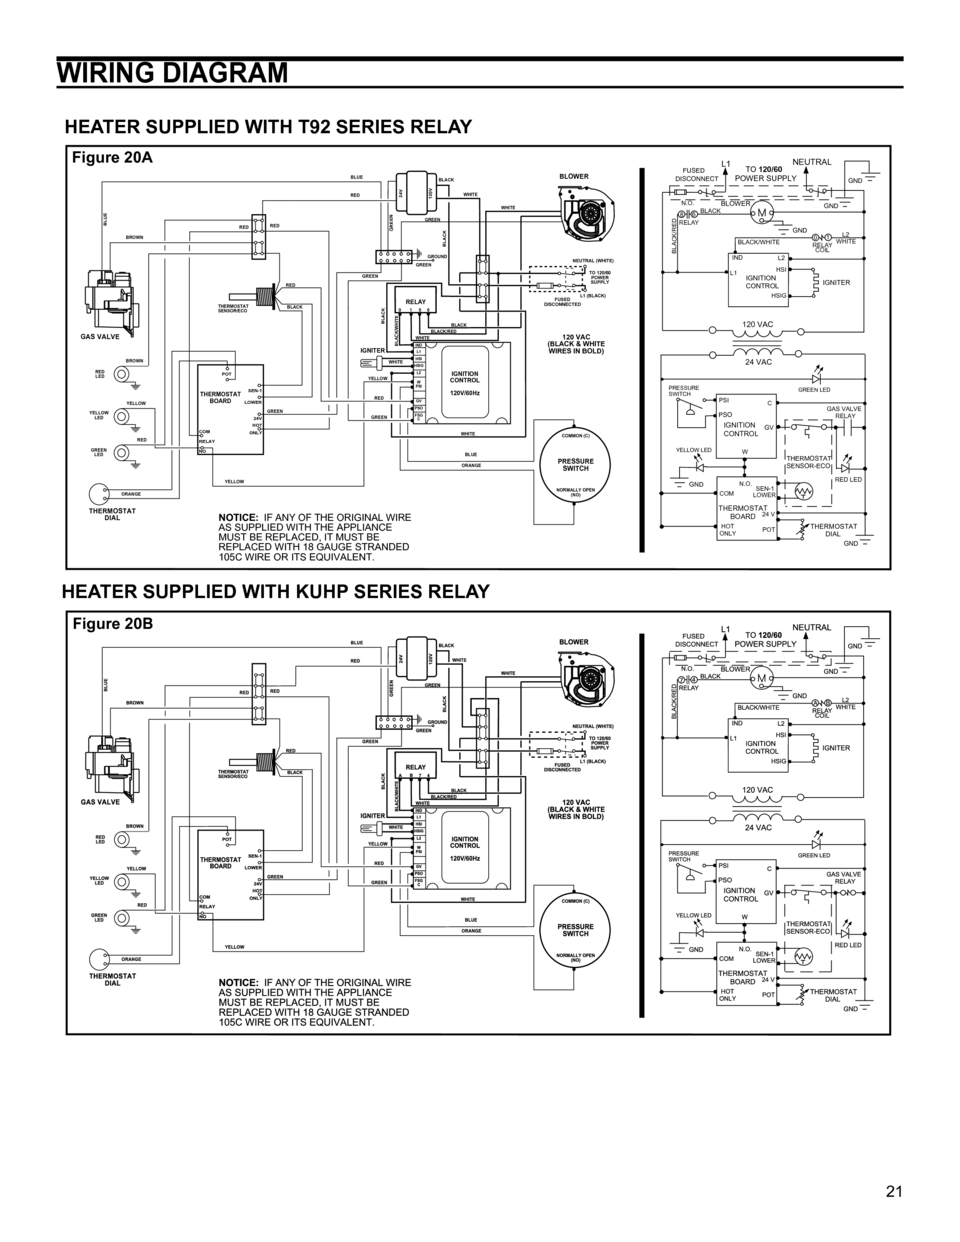 american water heater polaris high efficiency commercial gas water 21 wiring diagram heater supplied t92 series relay heater supplied kuhp series relay notice if any of the original wire as supplied the